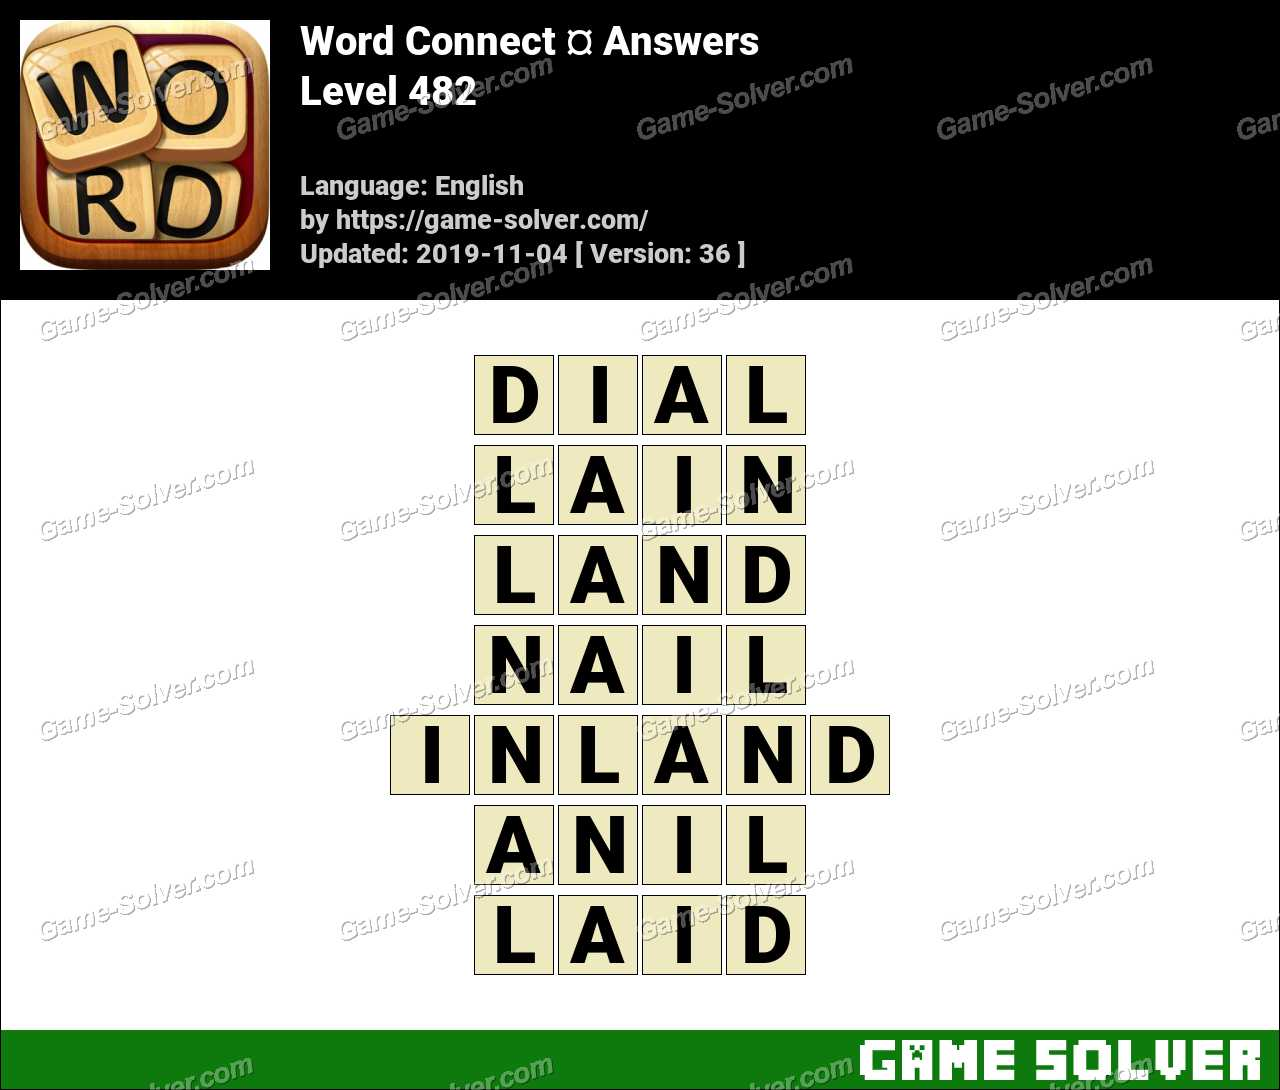 Word Connect Level 482 Answers